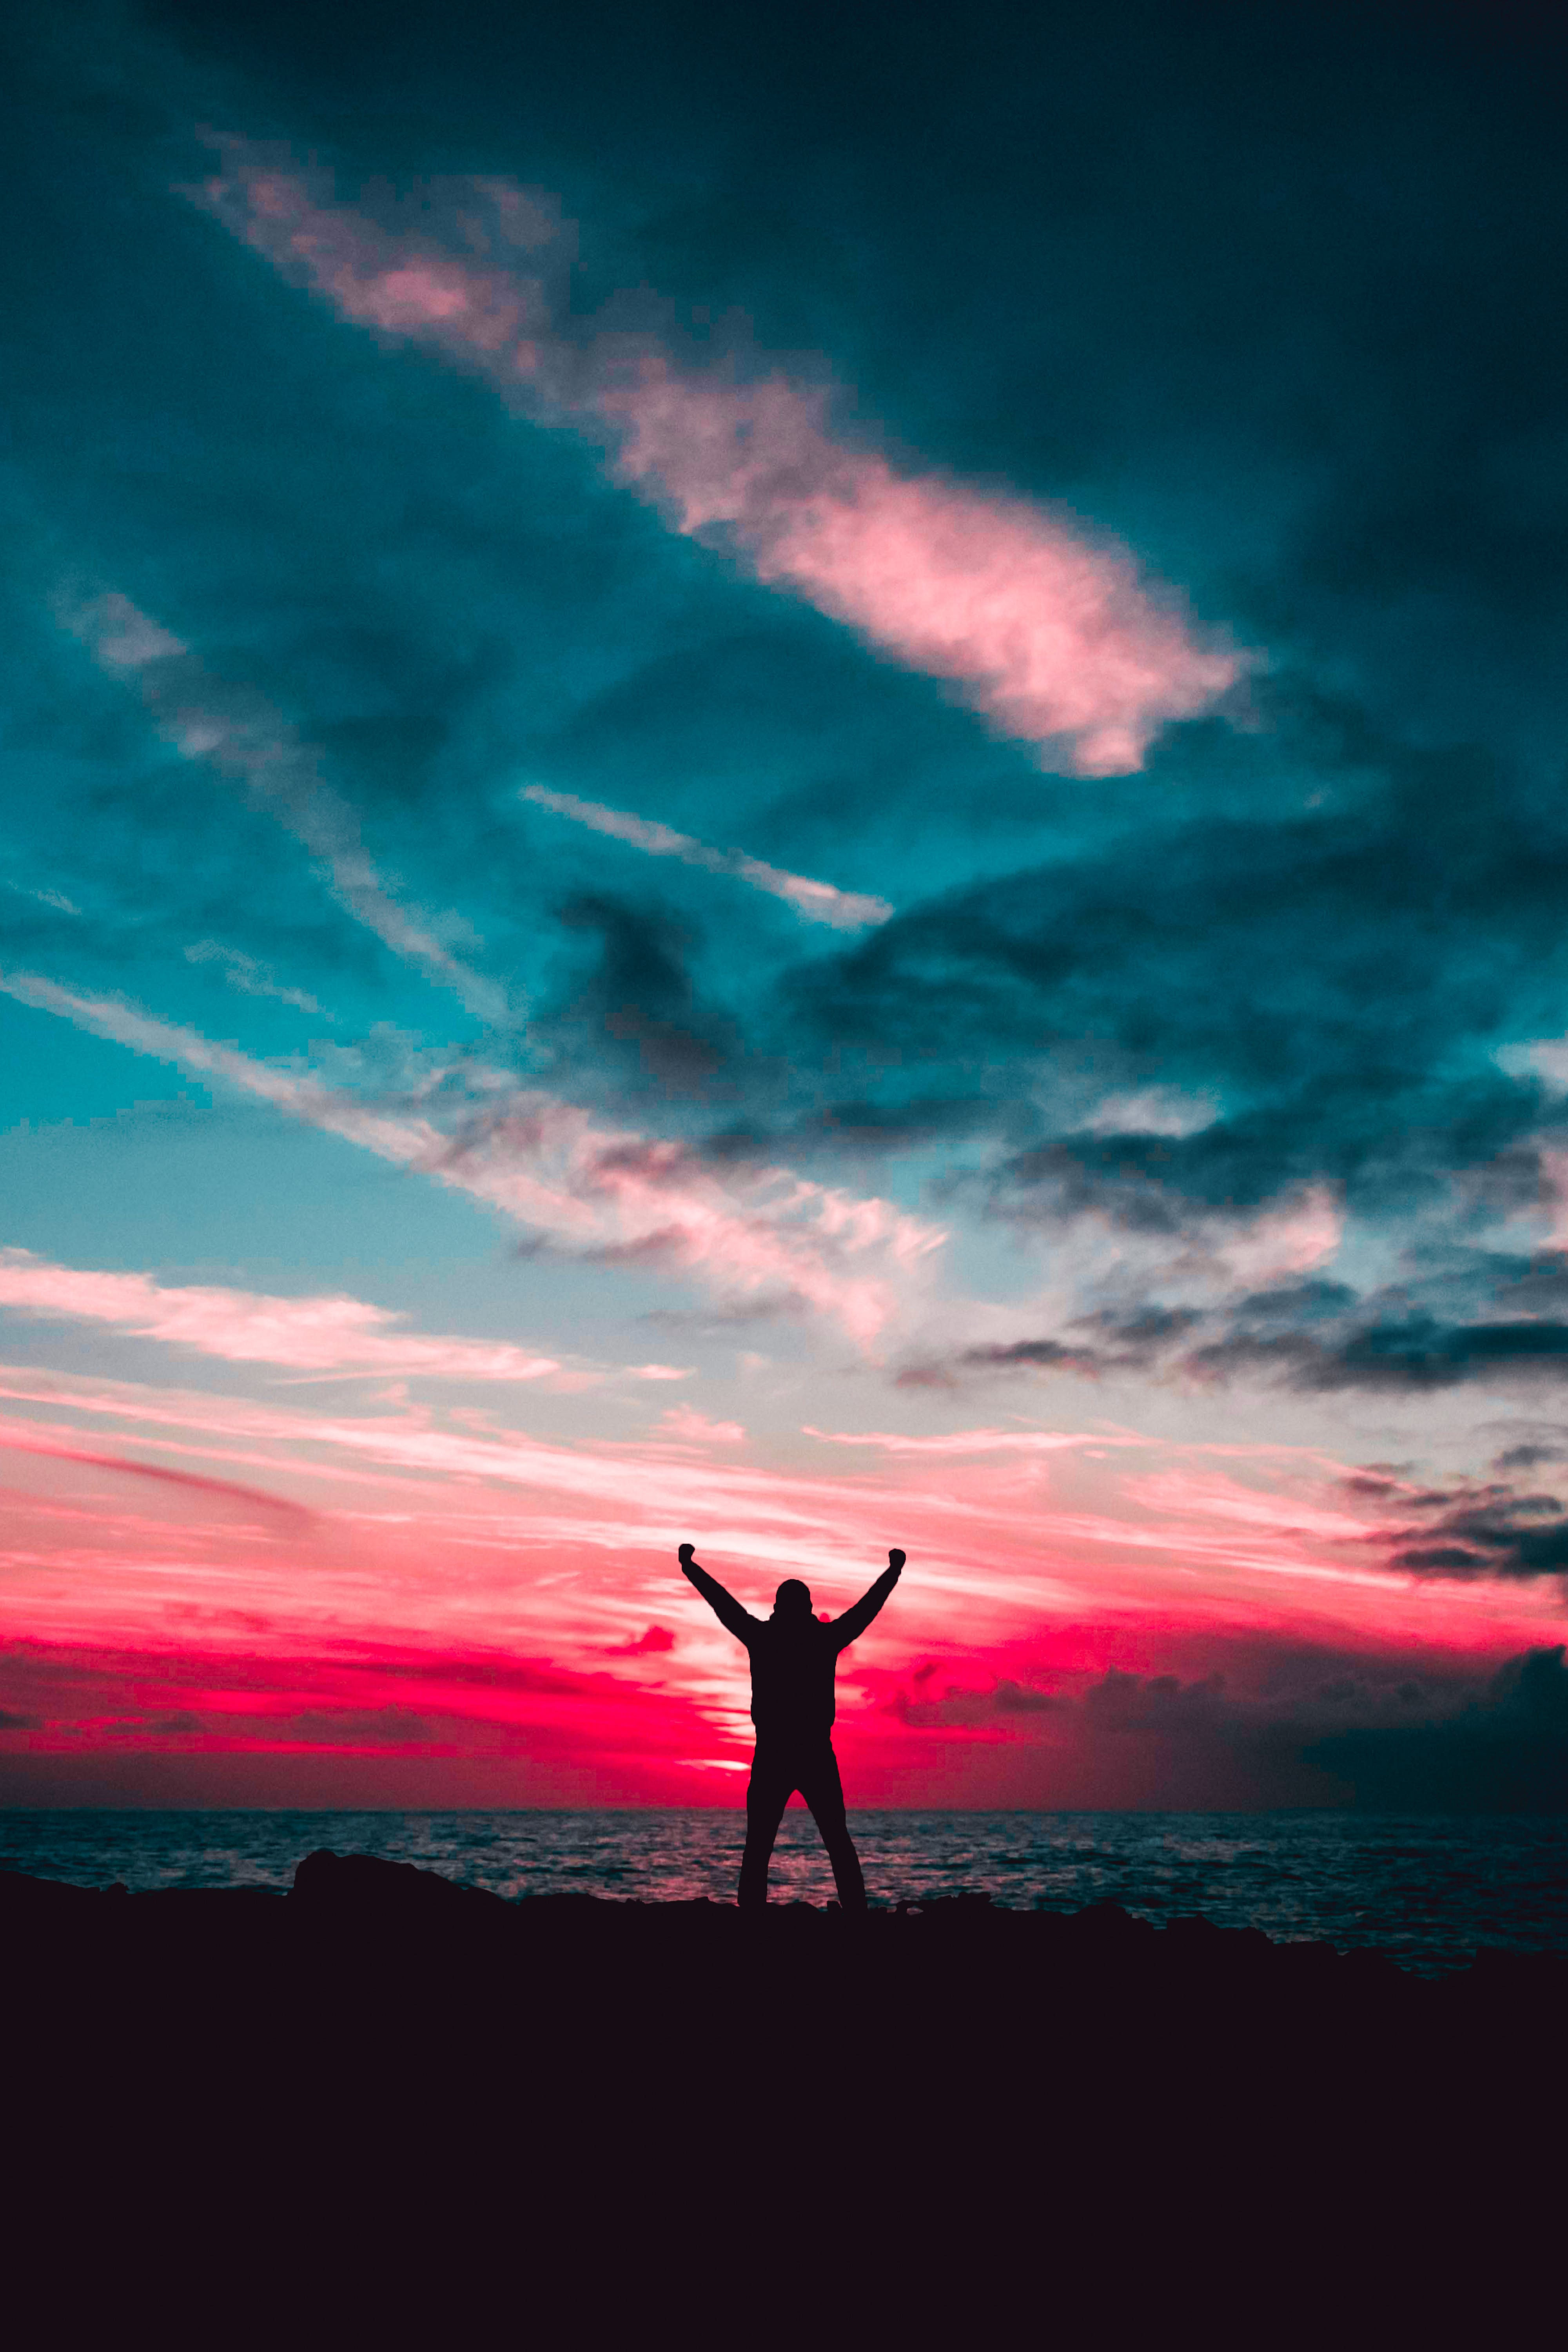 Silhouette of Man Raising Hands Against a Red Sunset Light Under Green Clouds